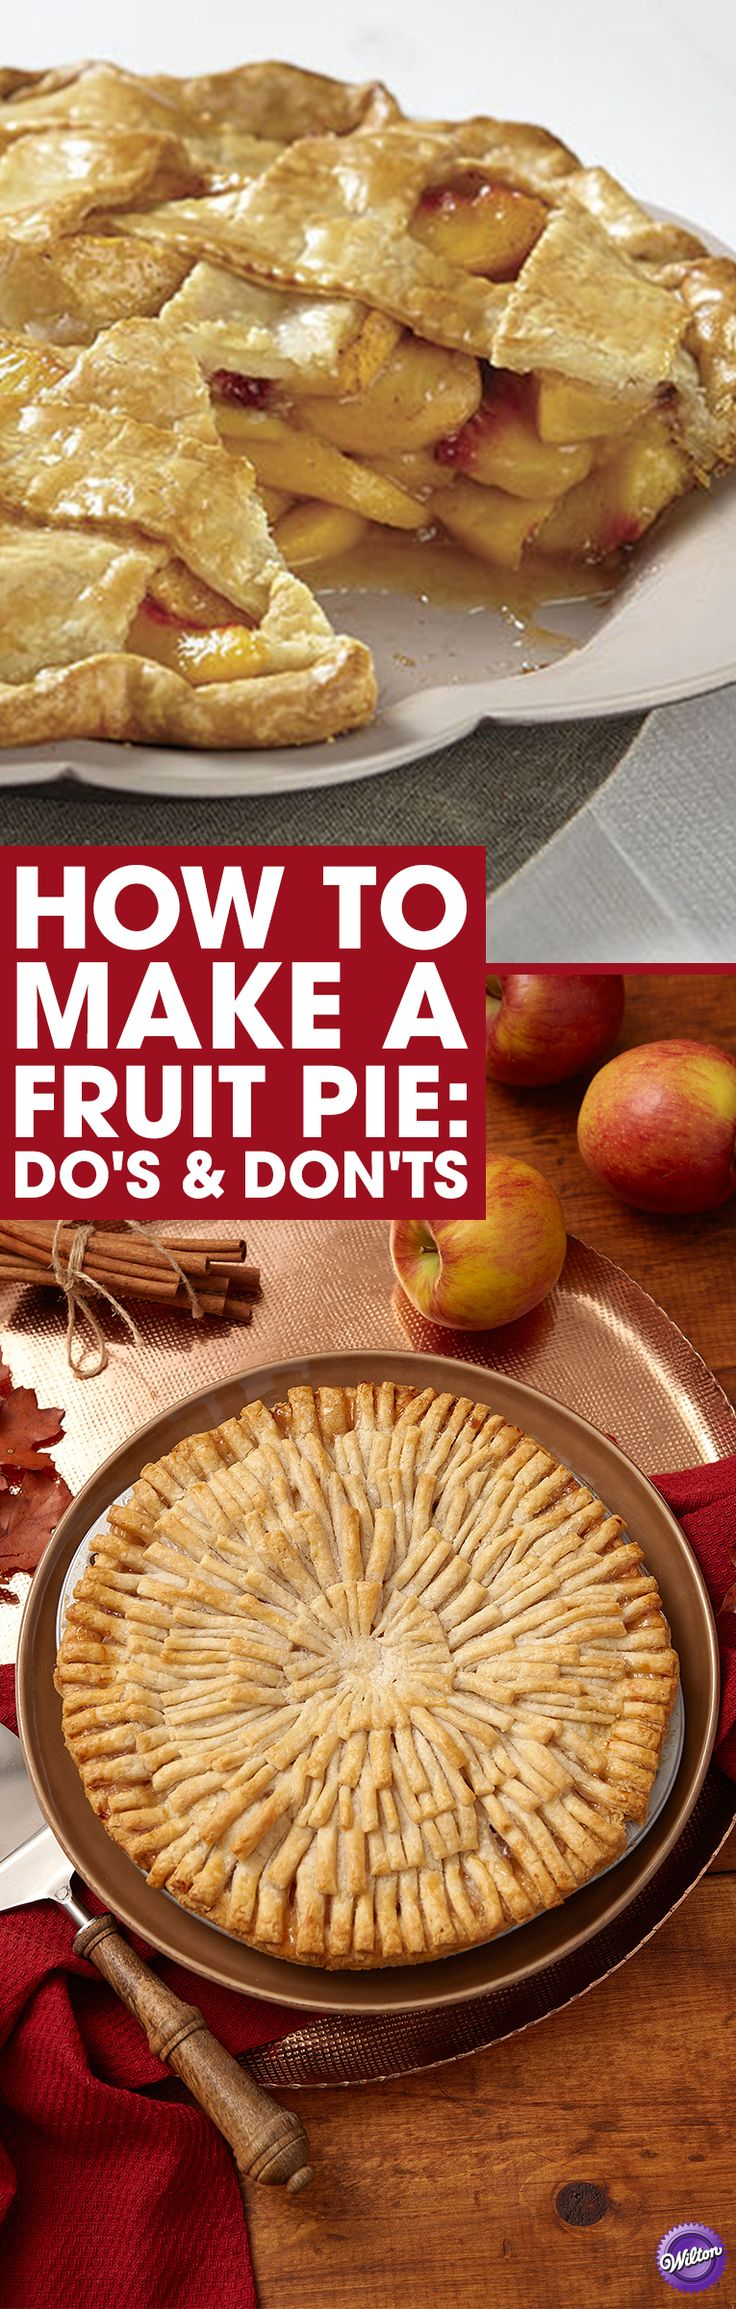 How to Make A Fruit Pie: Fruit pie season is year round. Learn the dos and don'ts of baking the perfect fruit pie!